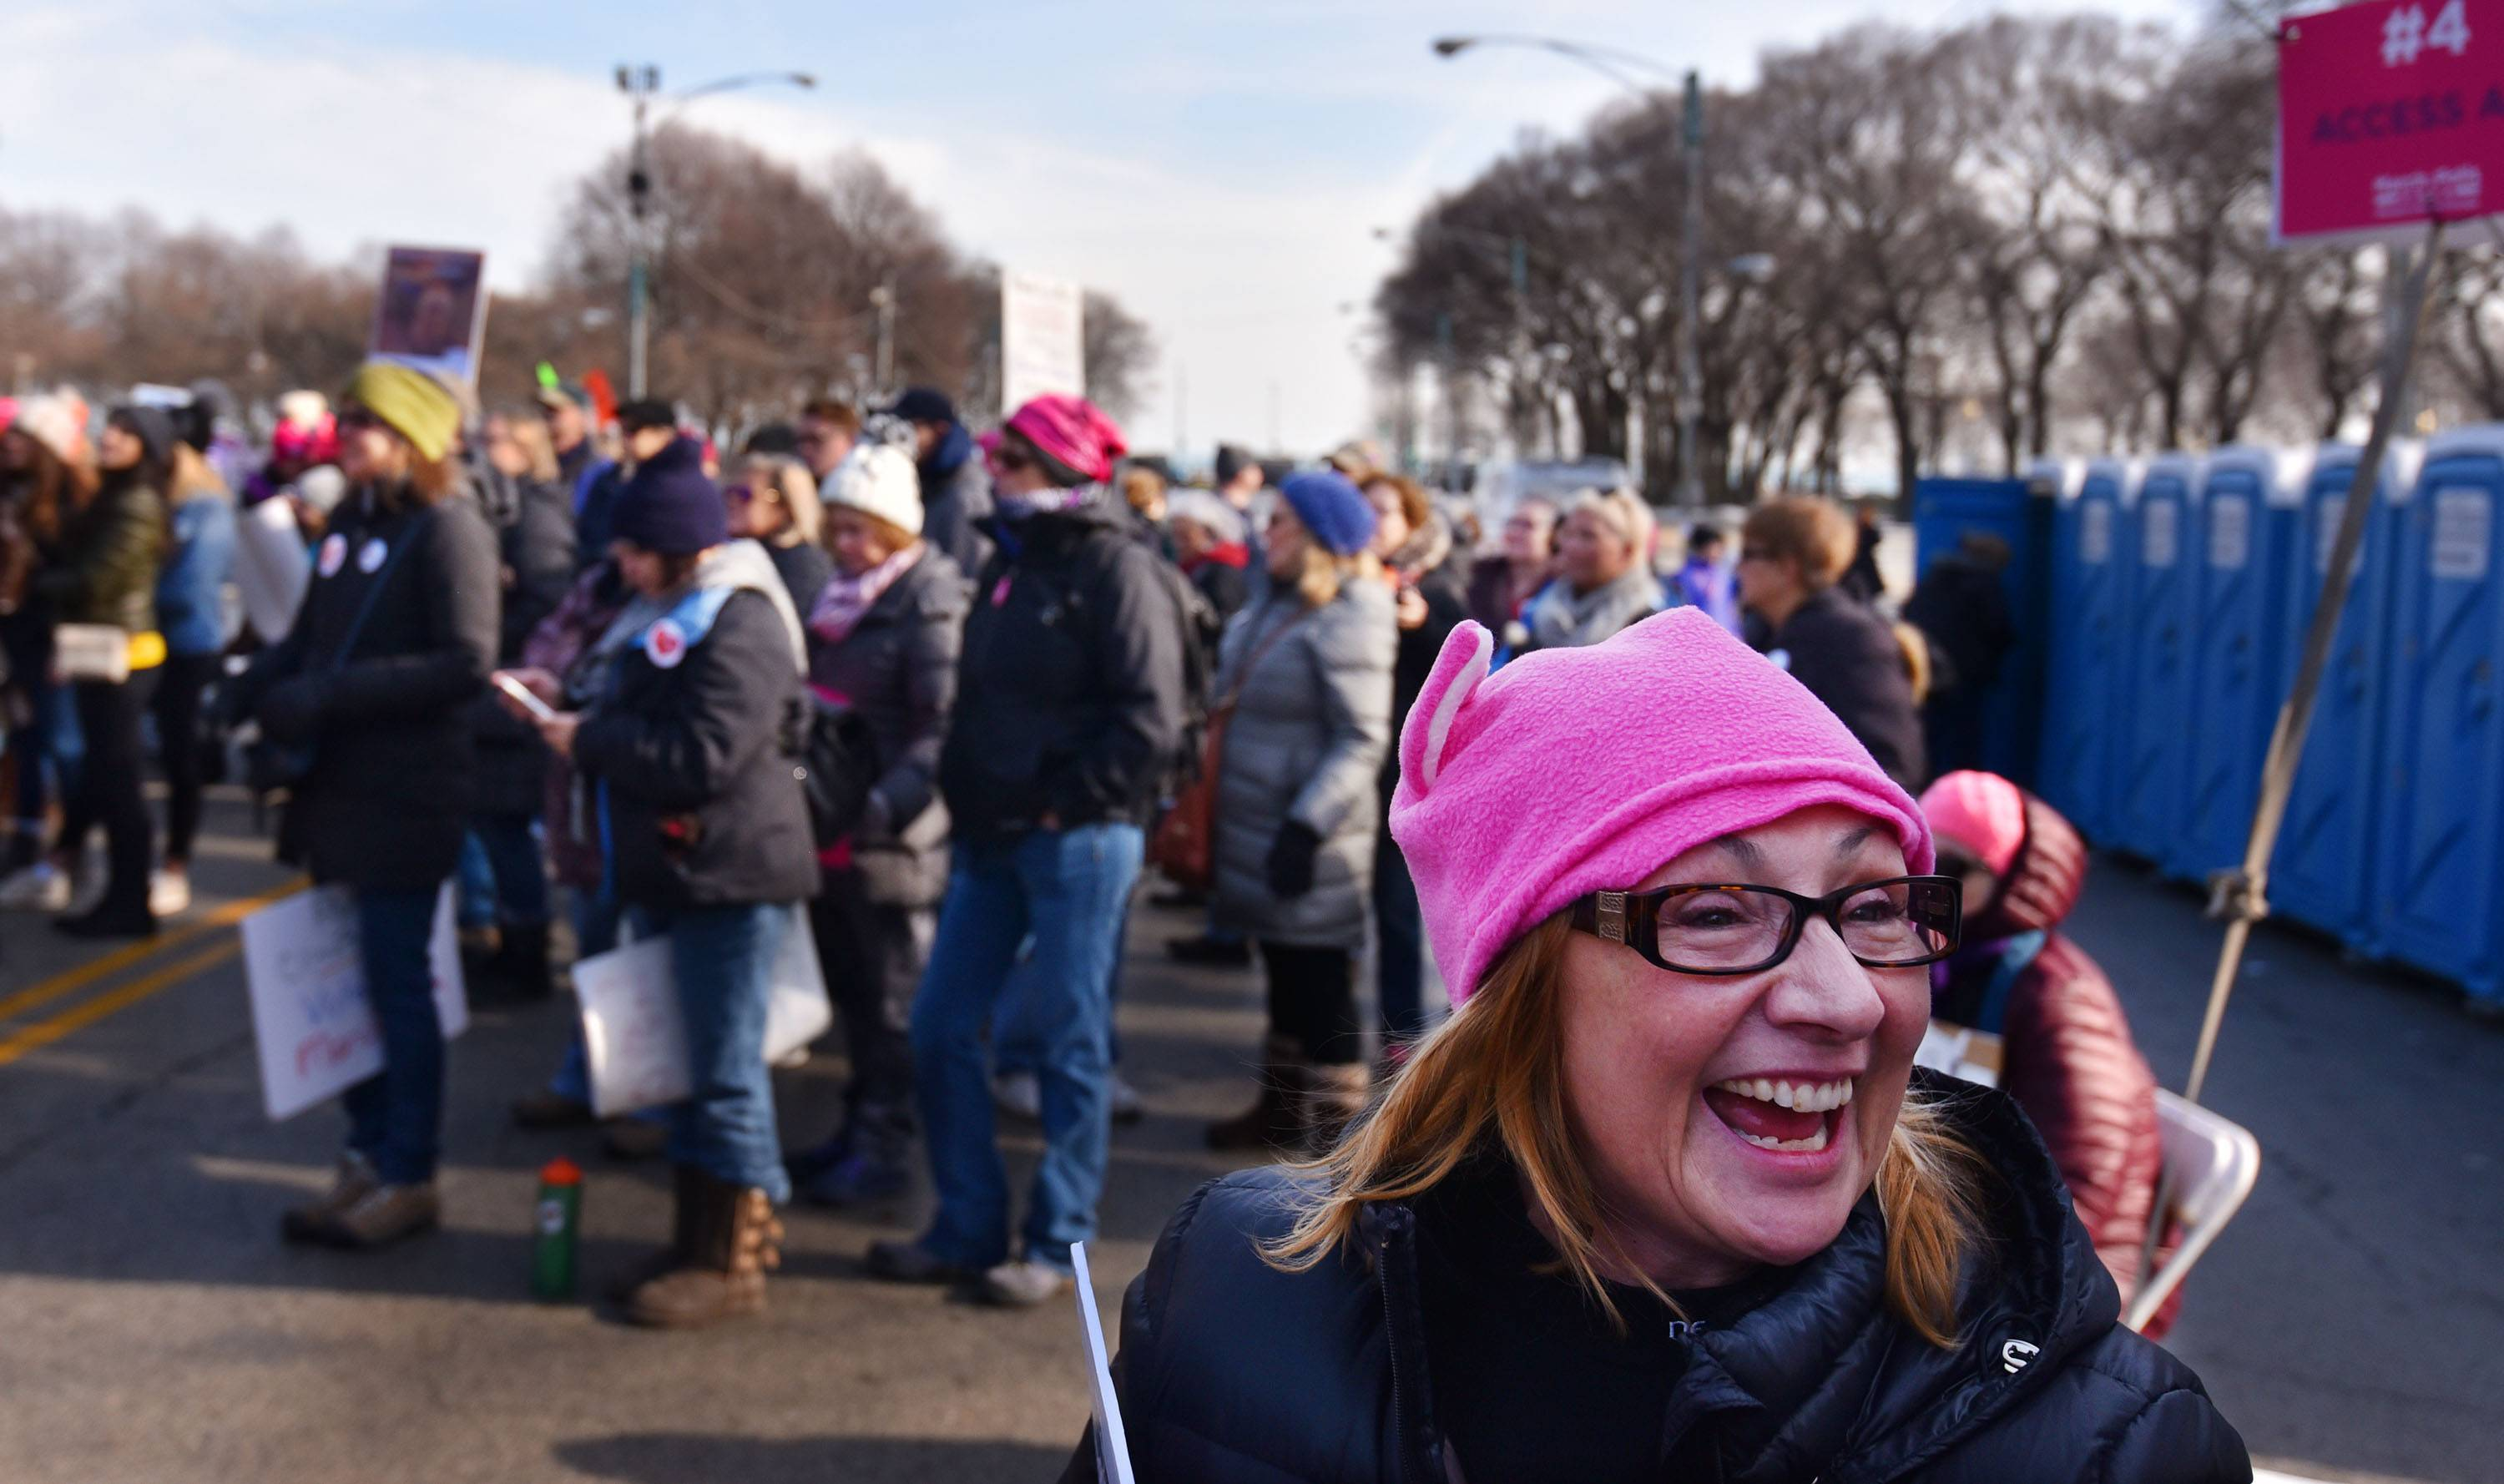 Suburbanites join the thousands at Women's March Chicago